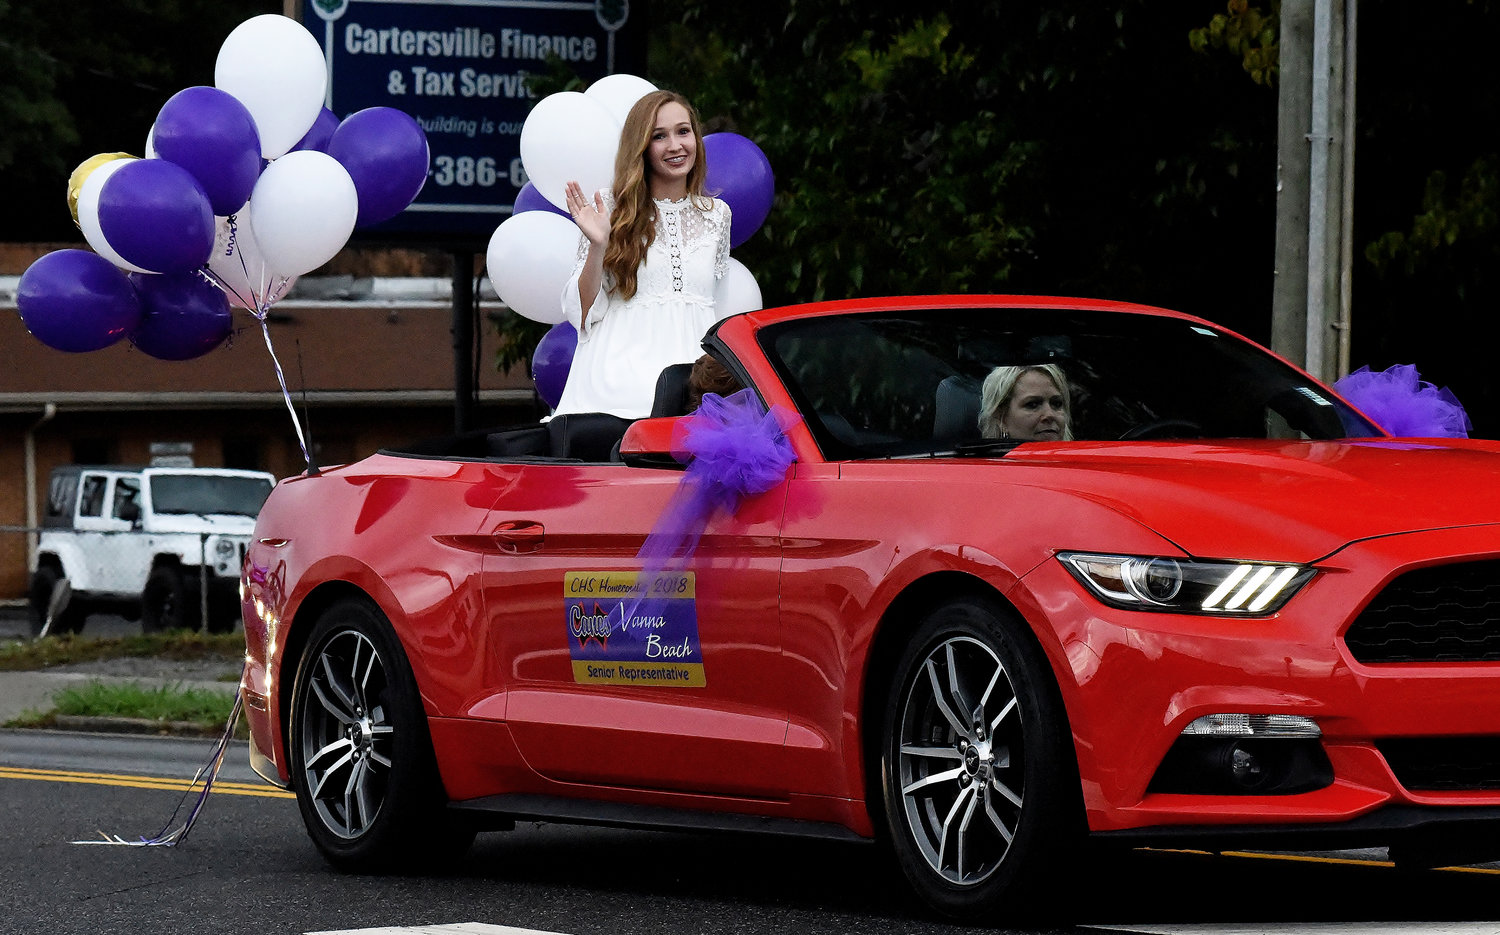 Homecoming Court senior representative Vanna Beach in the 2018 CHS homecoming parade.